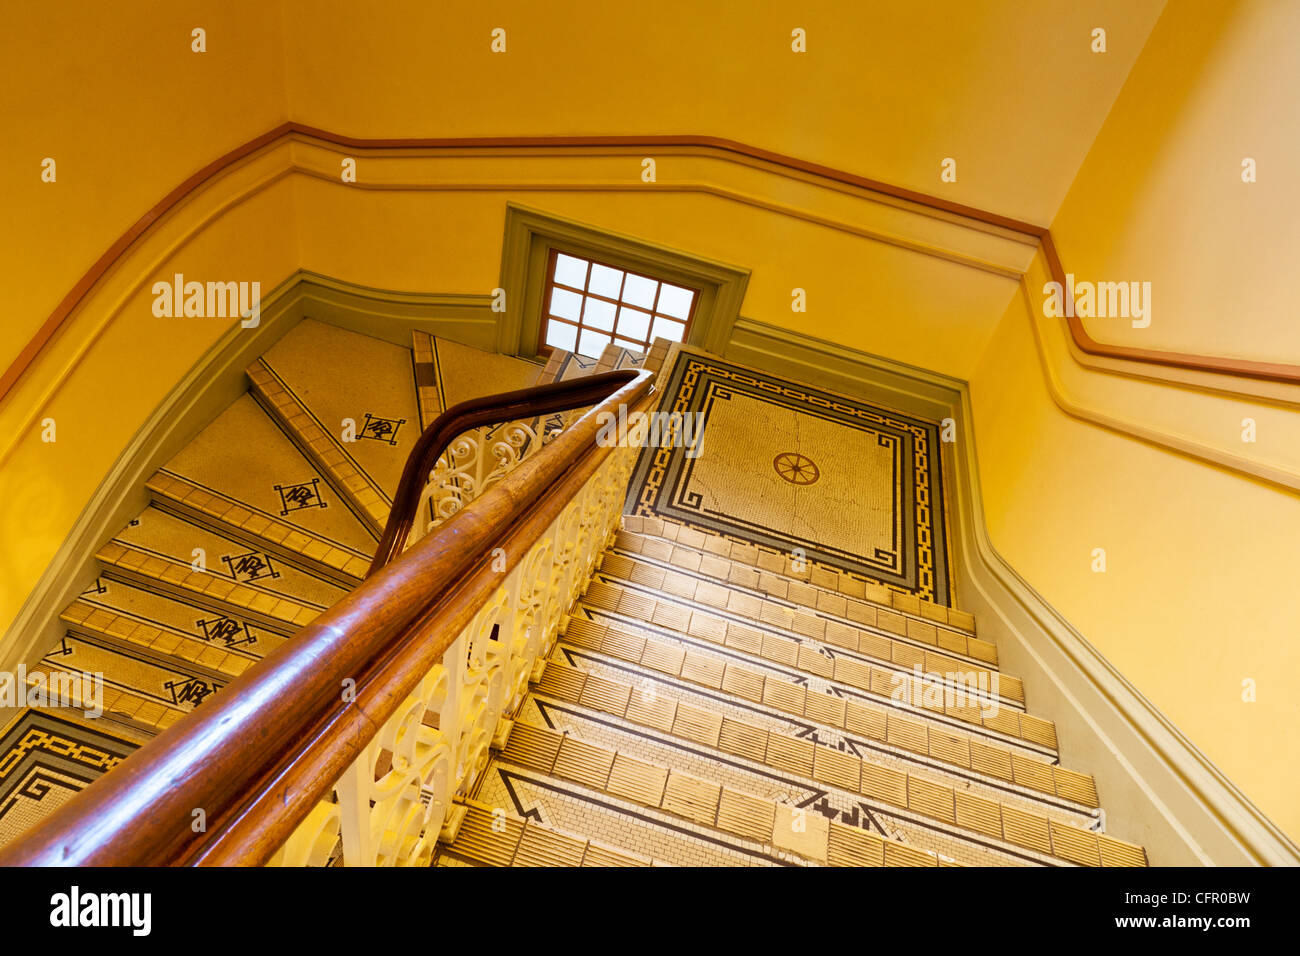 Staircase in  Dunedin Railway Station, Otago, New Zealand. - Stock Image